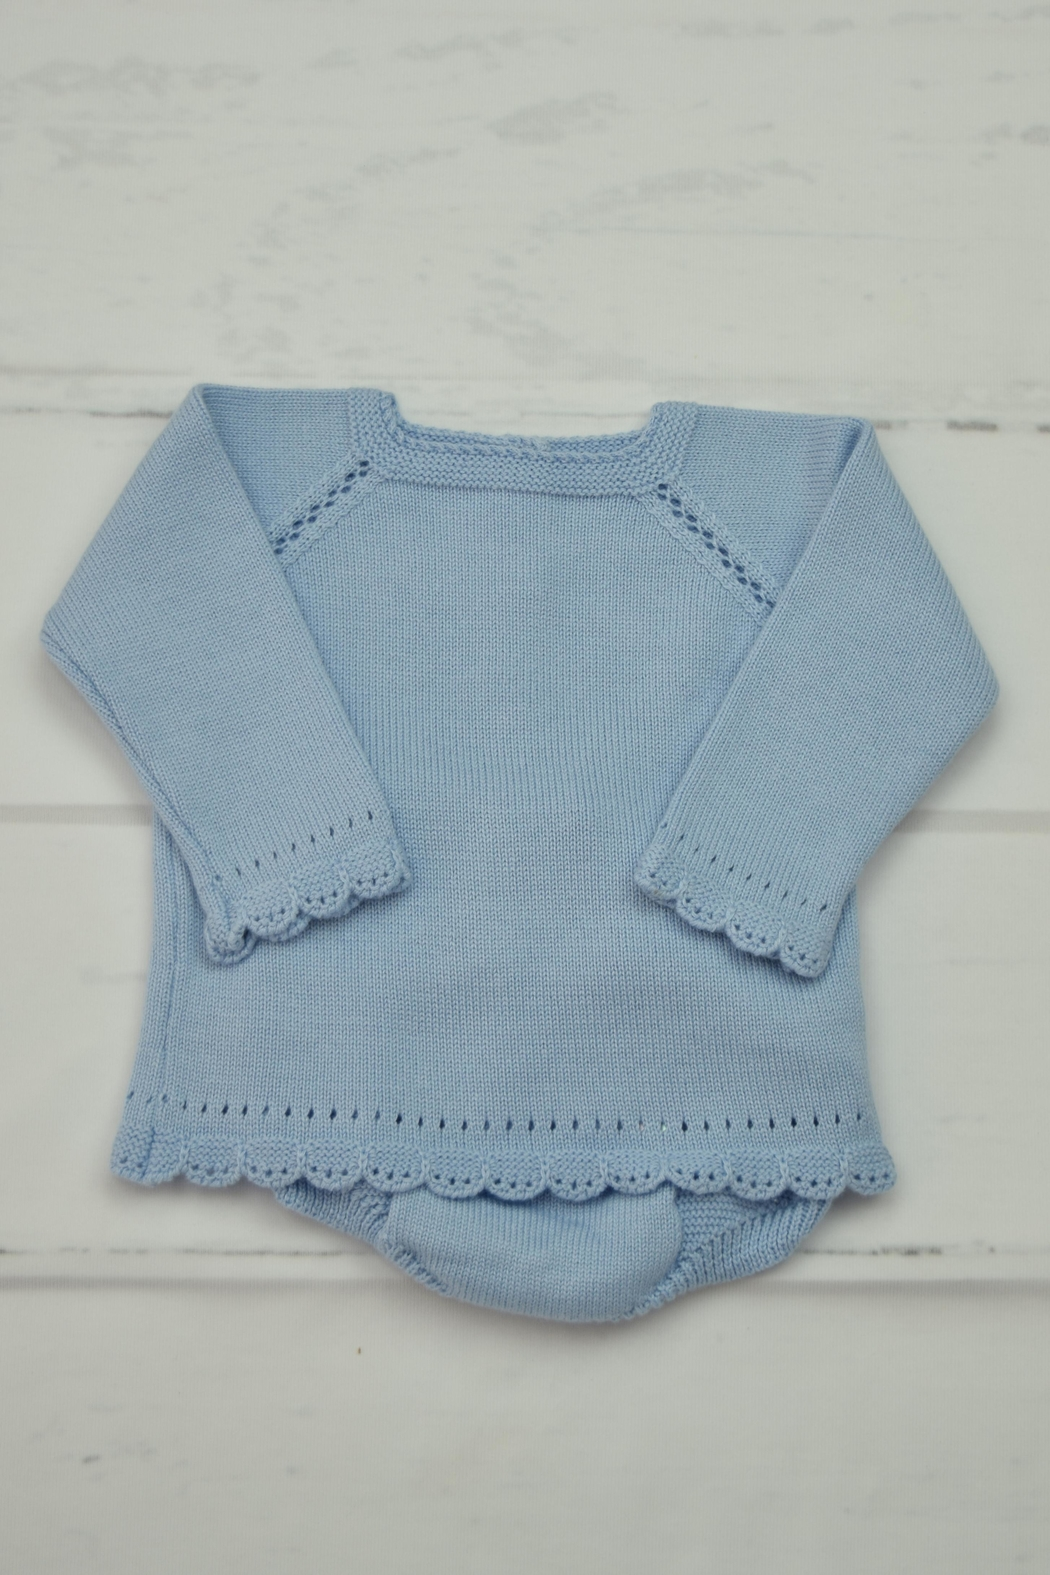 Granlei 1980 Blue Knitted Outfit - Main Image